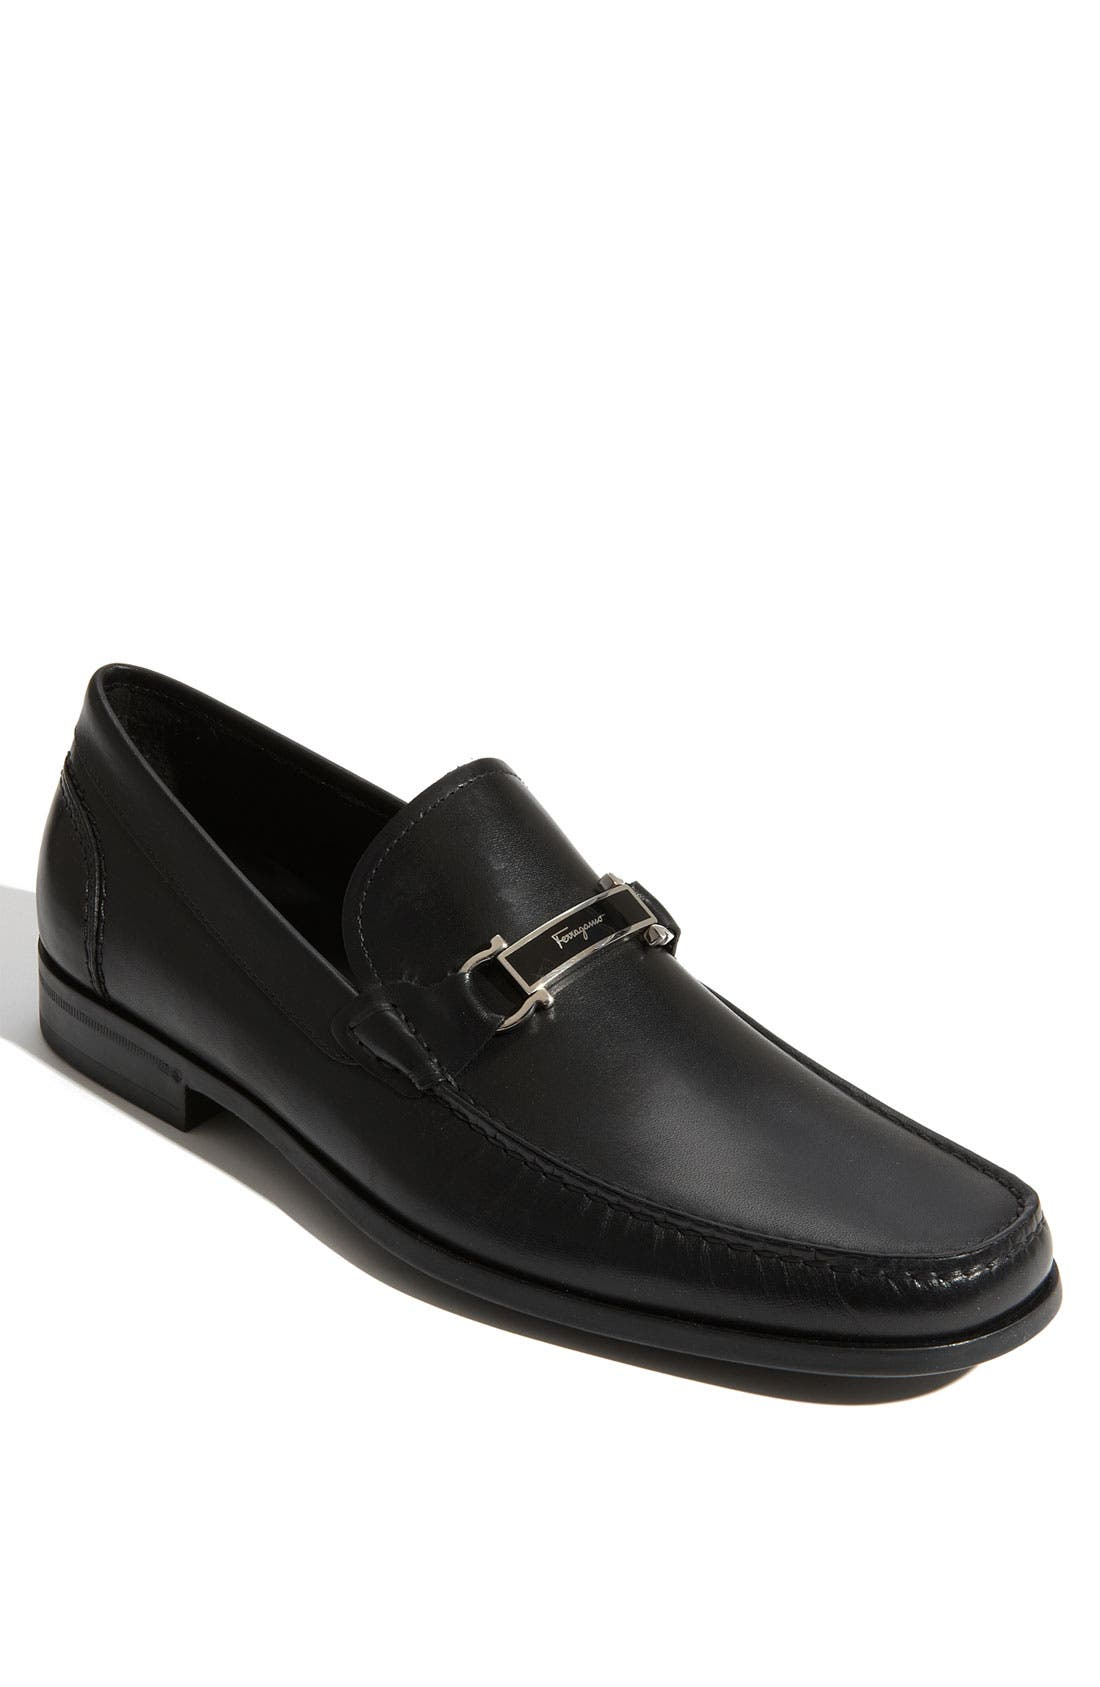 Alternate Image 1 Selected - Salvatore Ferragamo 'Bueno' Loafer